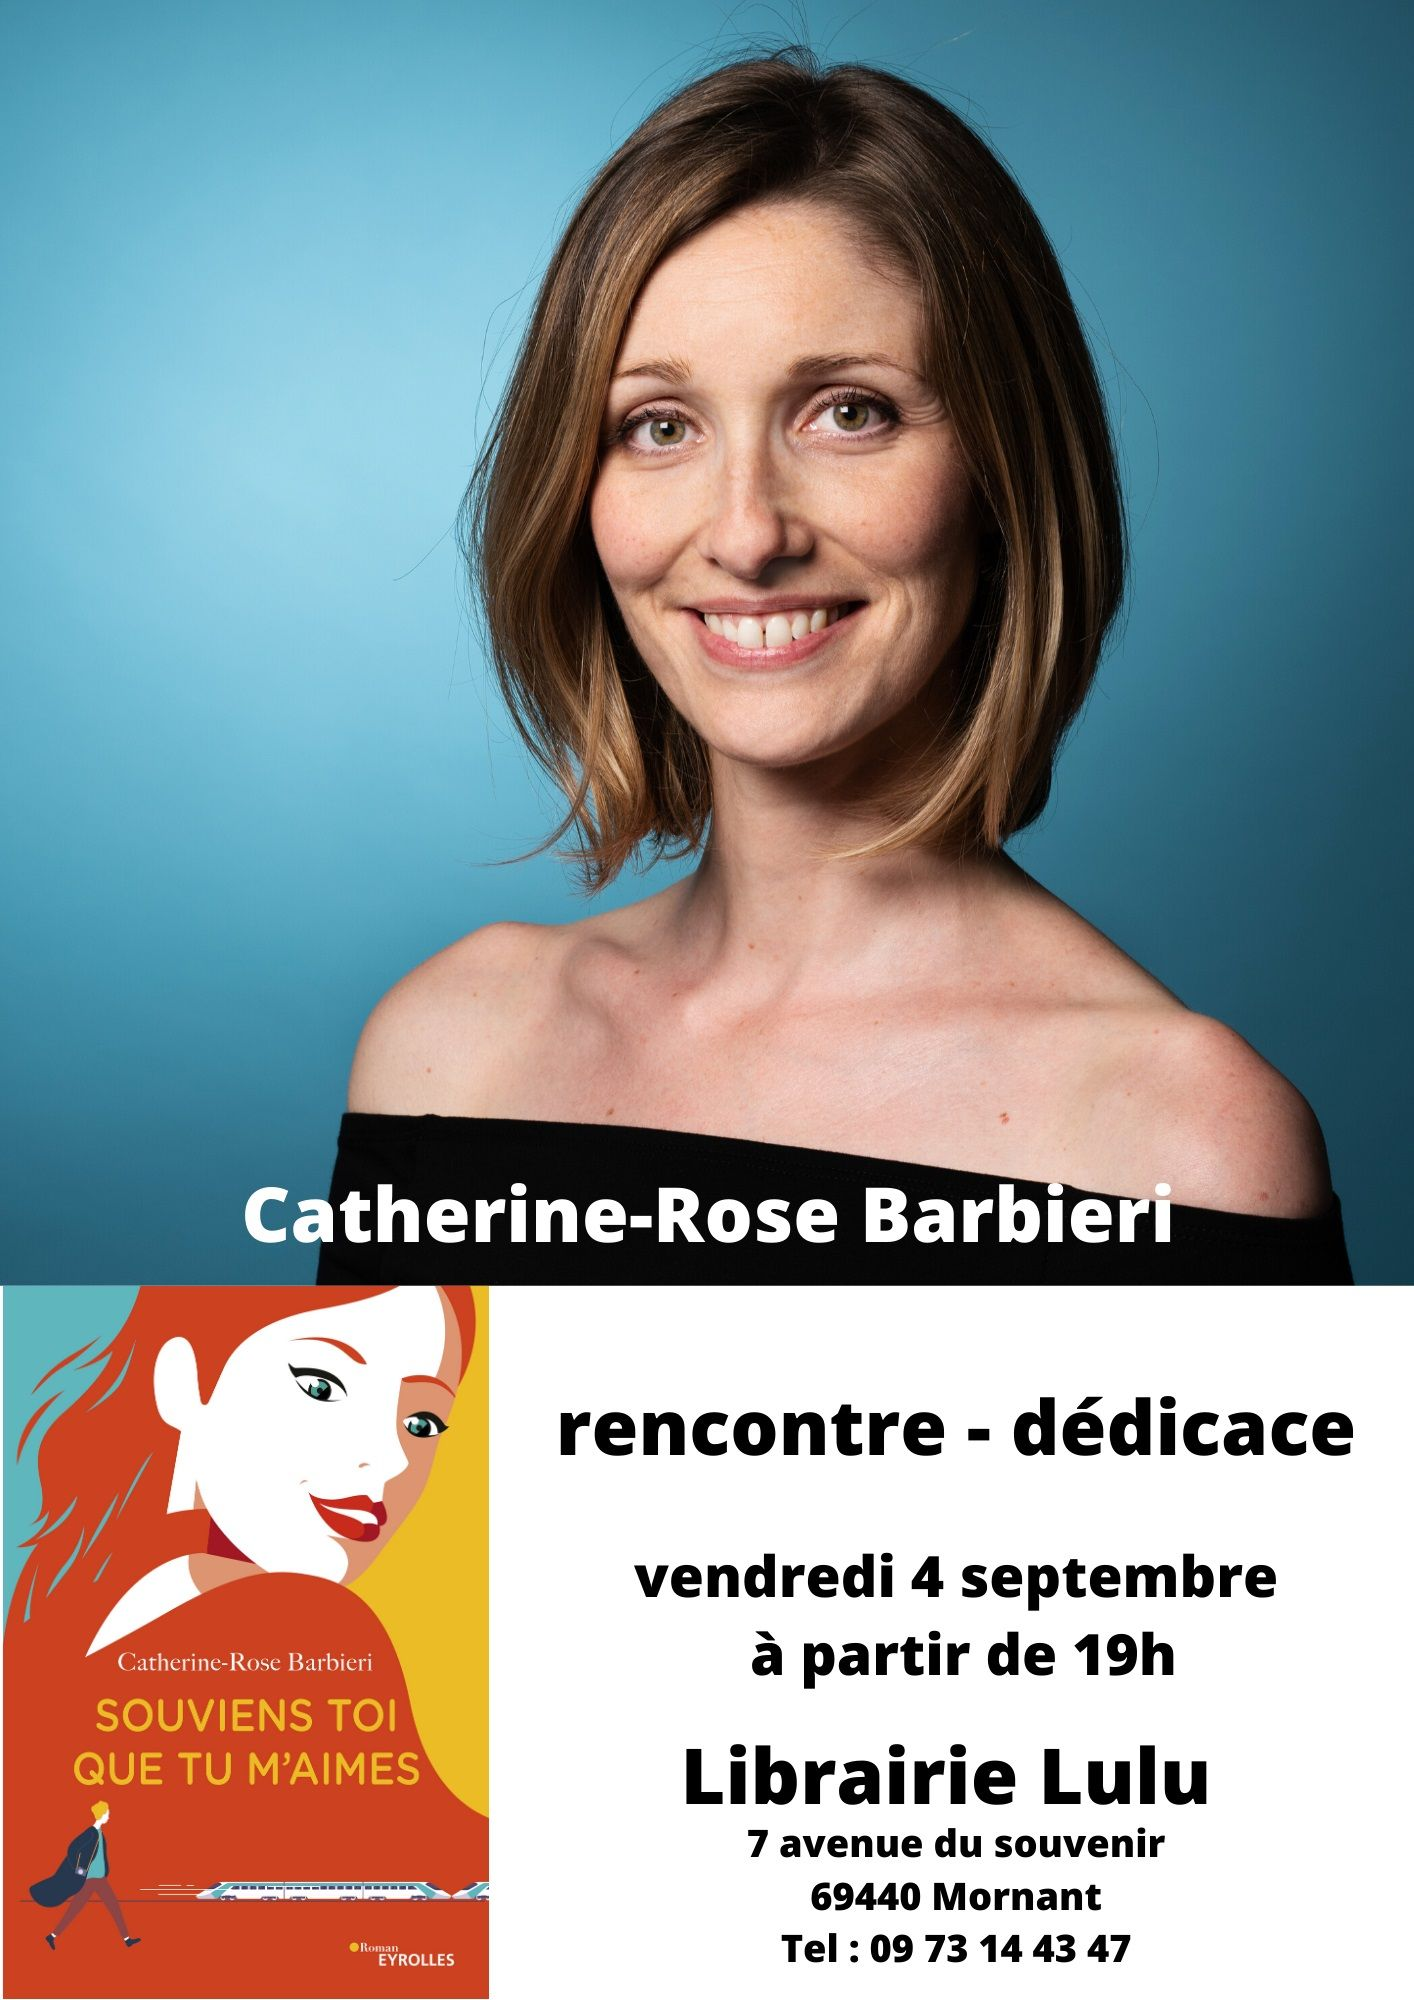 Vendredi 4 septembre à 19h - Catherine-Rose Barbieri en dédicace